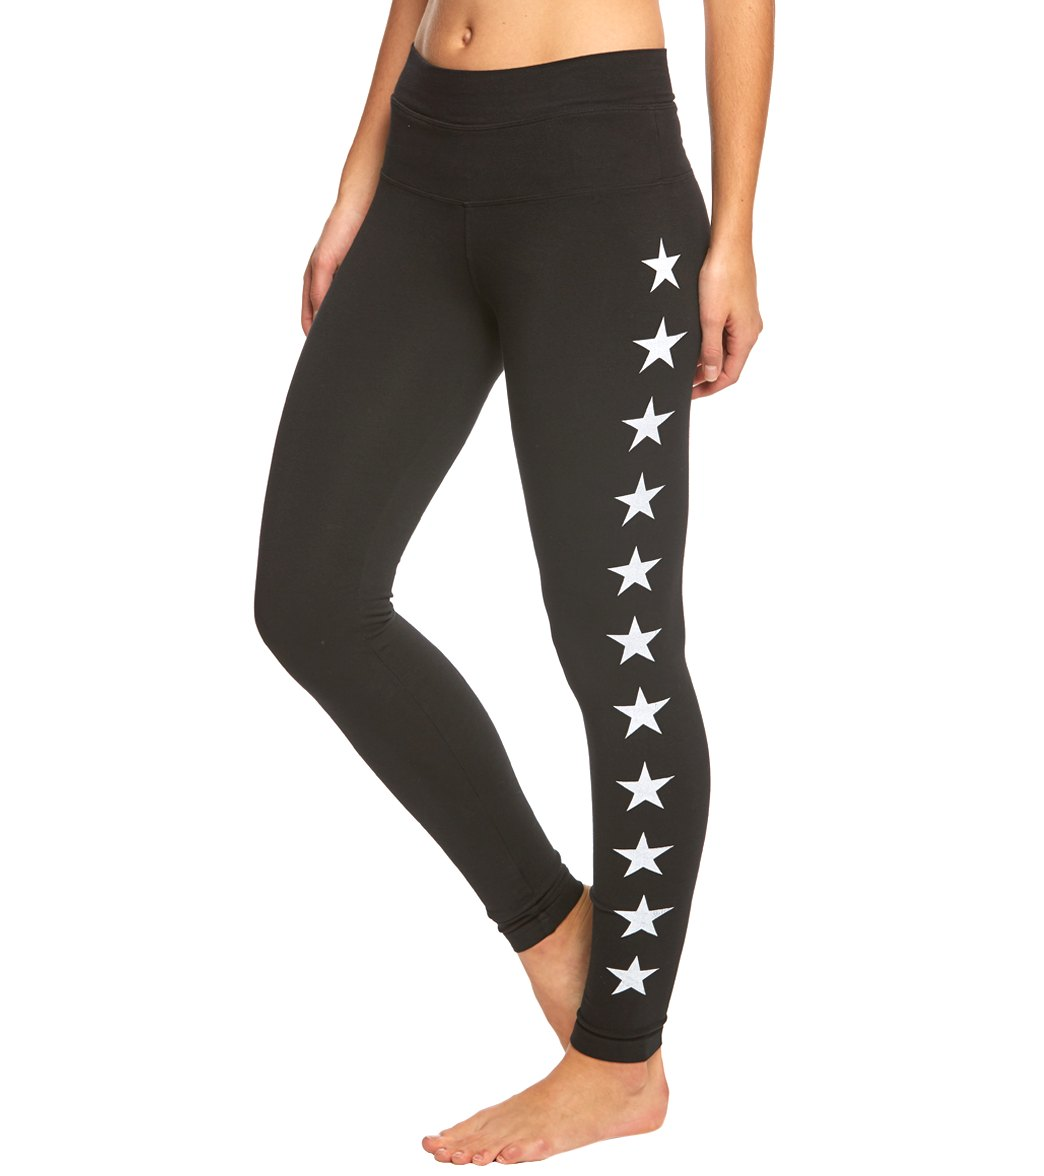 Find your fit in the Hard Tail High Rise Ankle Yoga Leggings. With a high, elastic waistband and fitted silhouette, these pants are sure to stay in place as you stretch and move Features High-rise, full length yoga leggings. Star print design down side legs. Slim cuffs. Pre-shrunk. Soft feel. Machine wash and dry. Details Fabric: 90% Cotton, 10% Lycra Color: Black/White, Olive/Red Style Features: Star print design down side legs Fit: Tight Rise: High Inseam: 29\\\